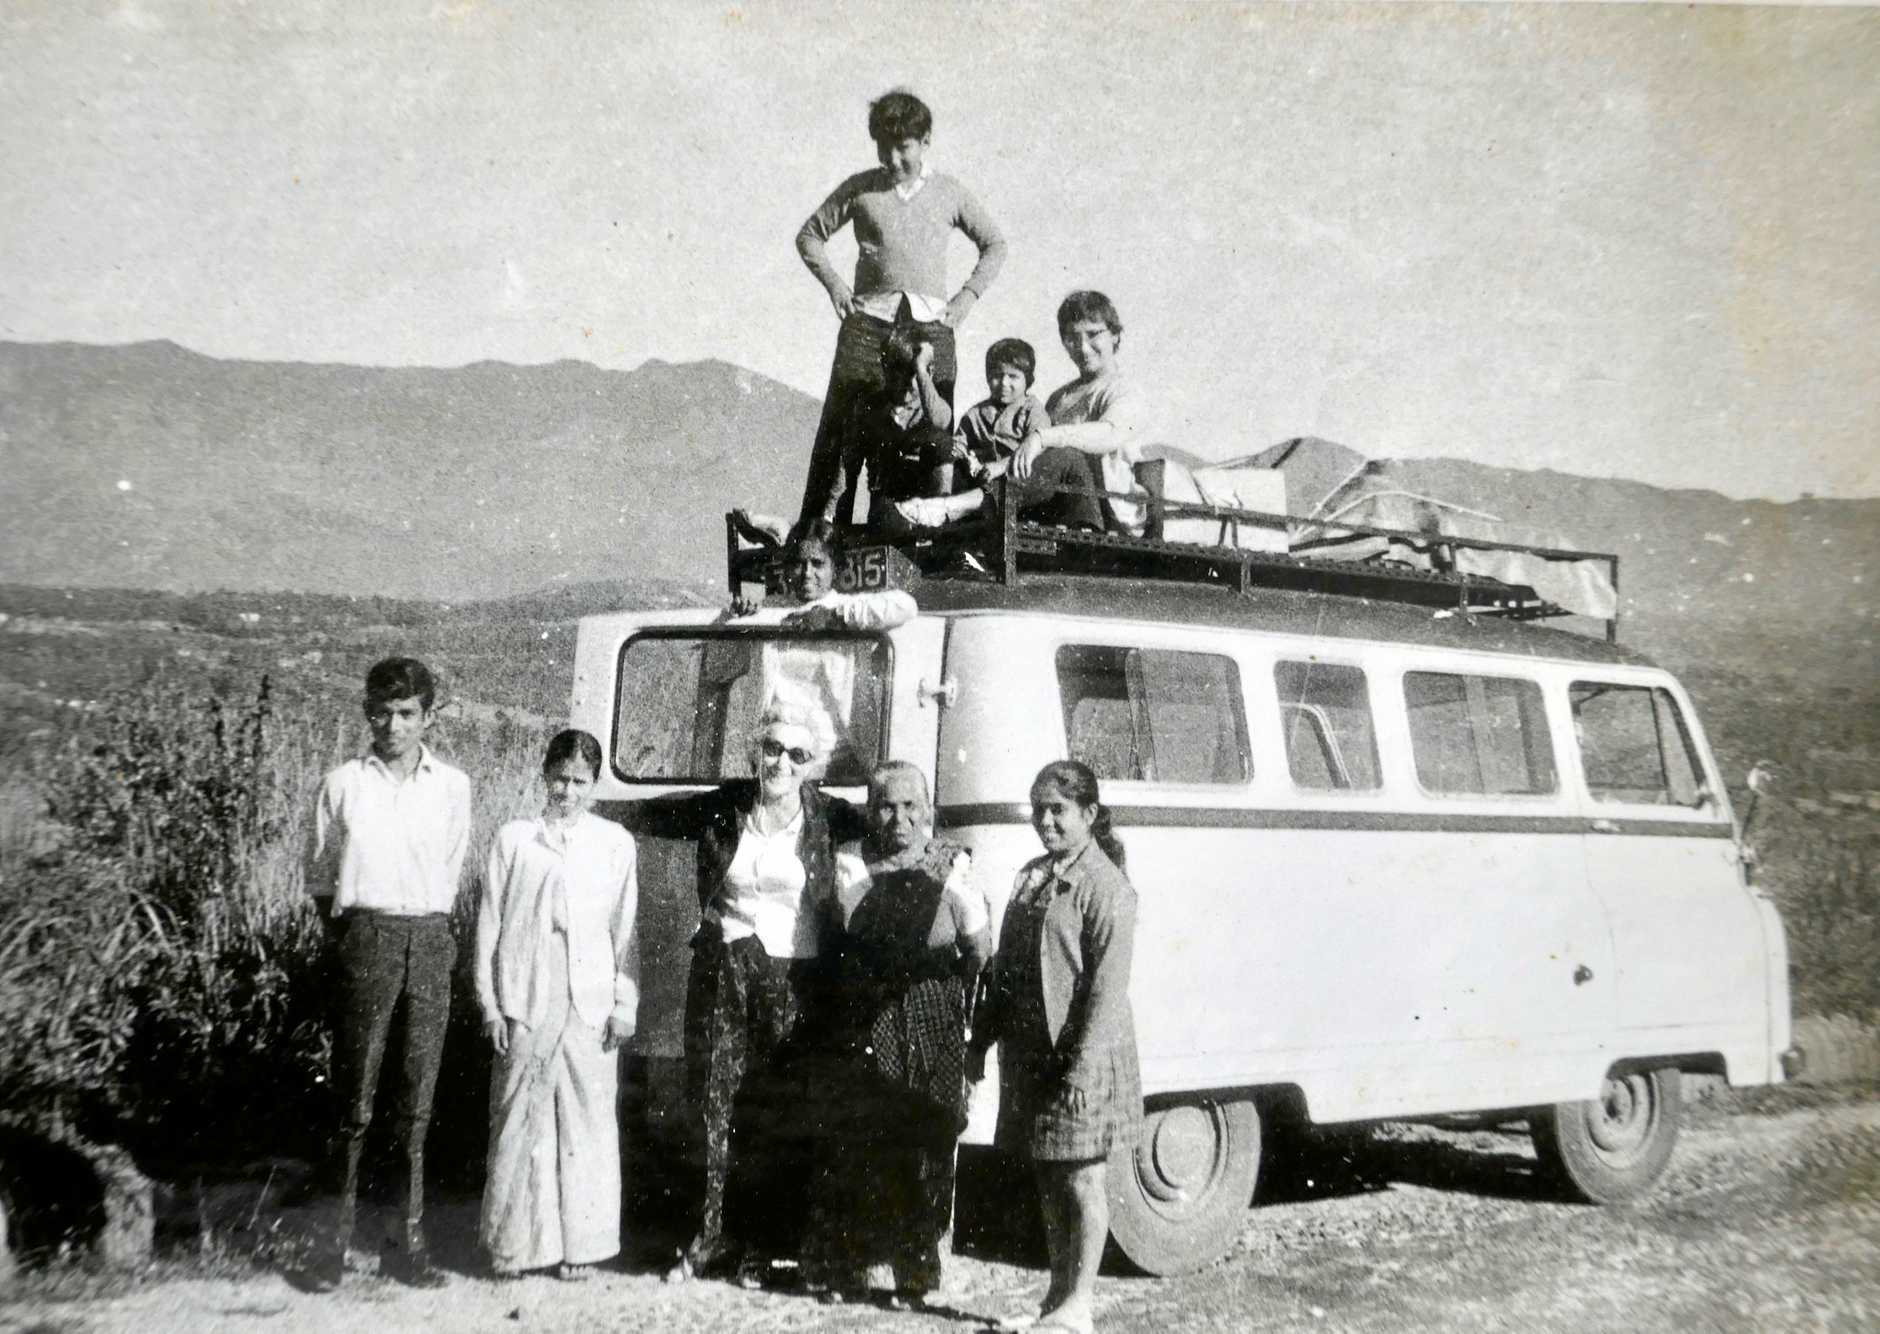 A young Peter Kuruvita (roof top) during his family's overland voyage from London to Sri Lanka in a minibus purchased from the Thunderbirds set.